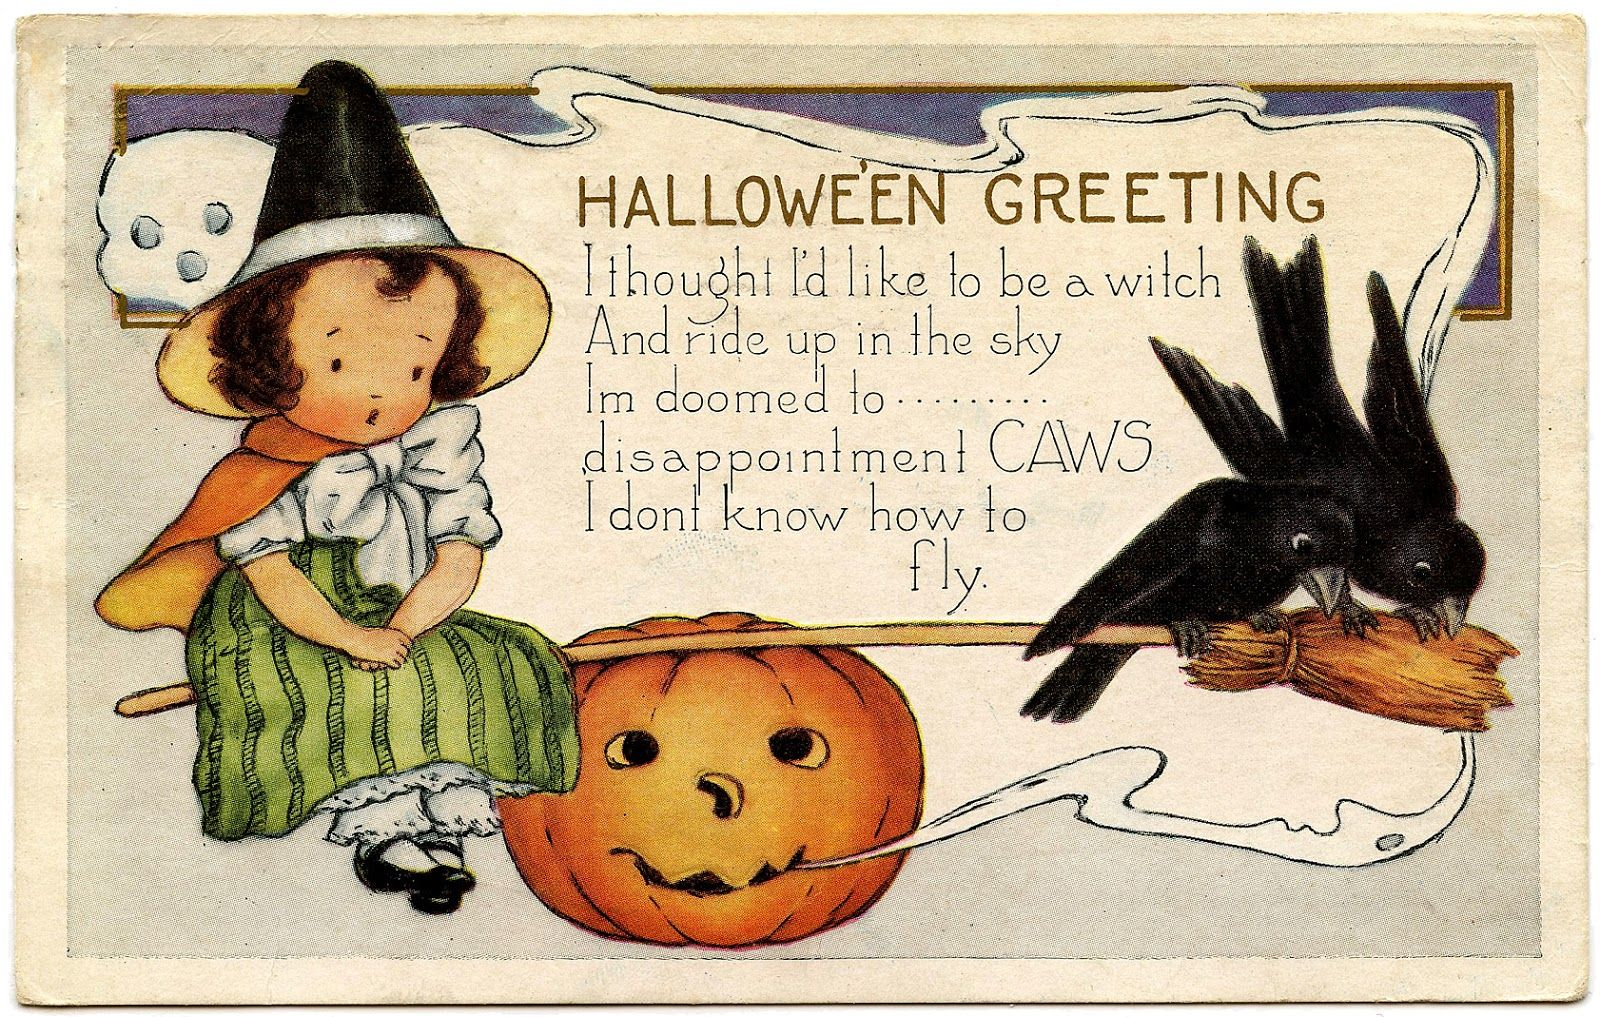 15 Cute Witch Halloween Pictures! Halloween greetings